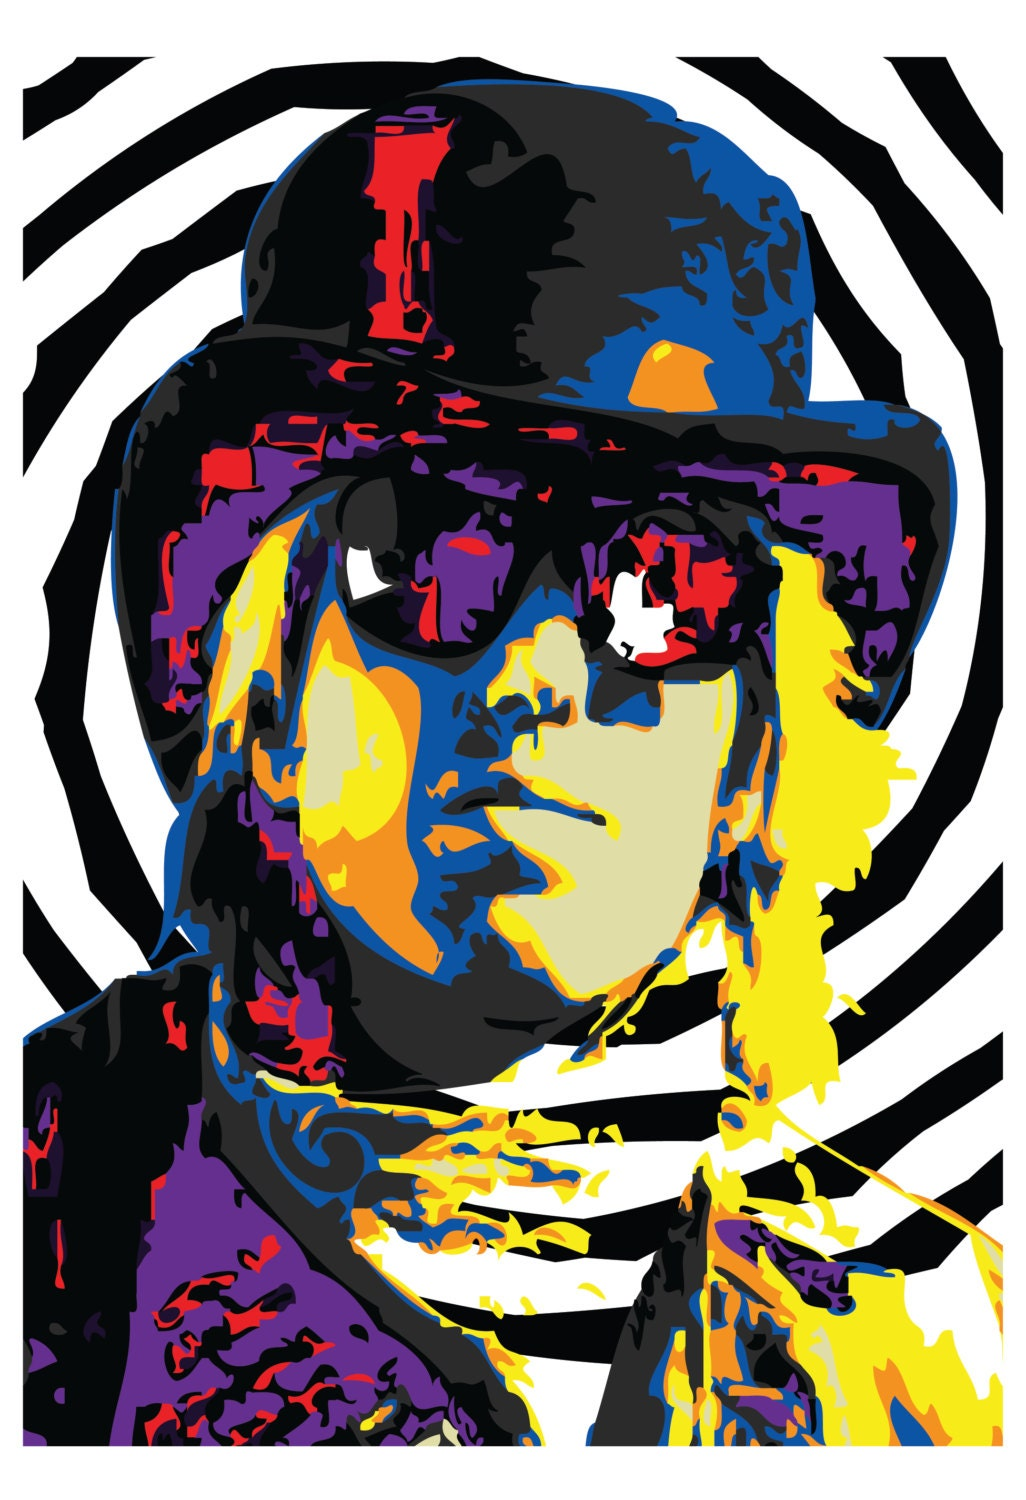 Wall Art Home Decor Tom Petty Pop Art Limited Print By Tyart2479